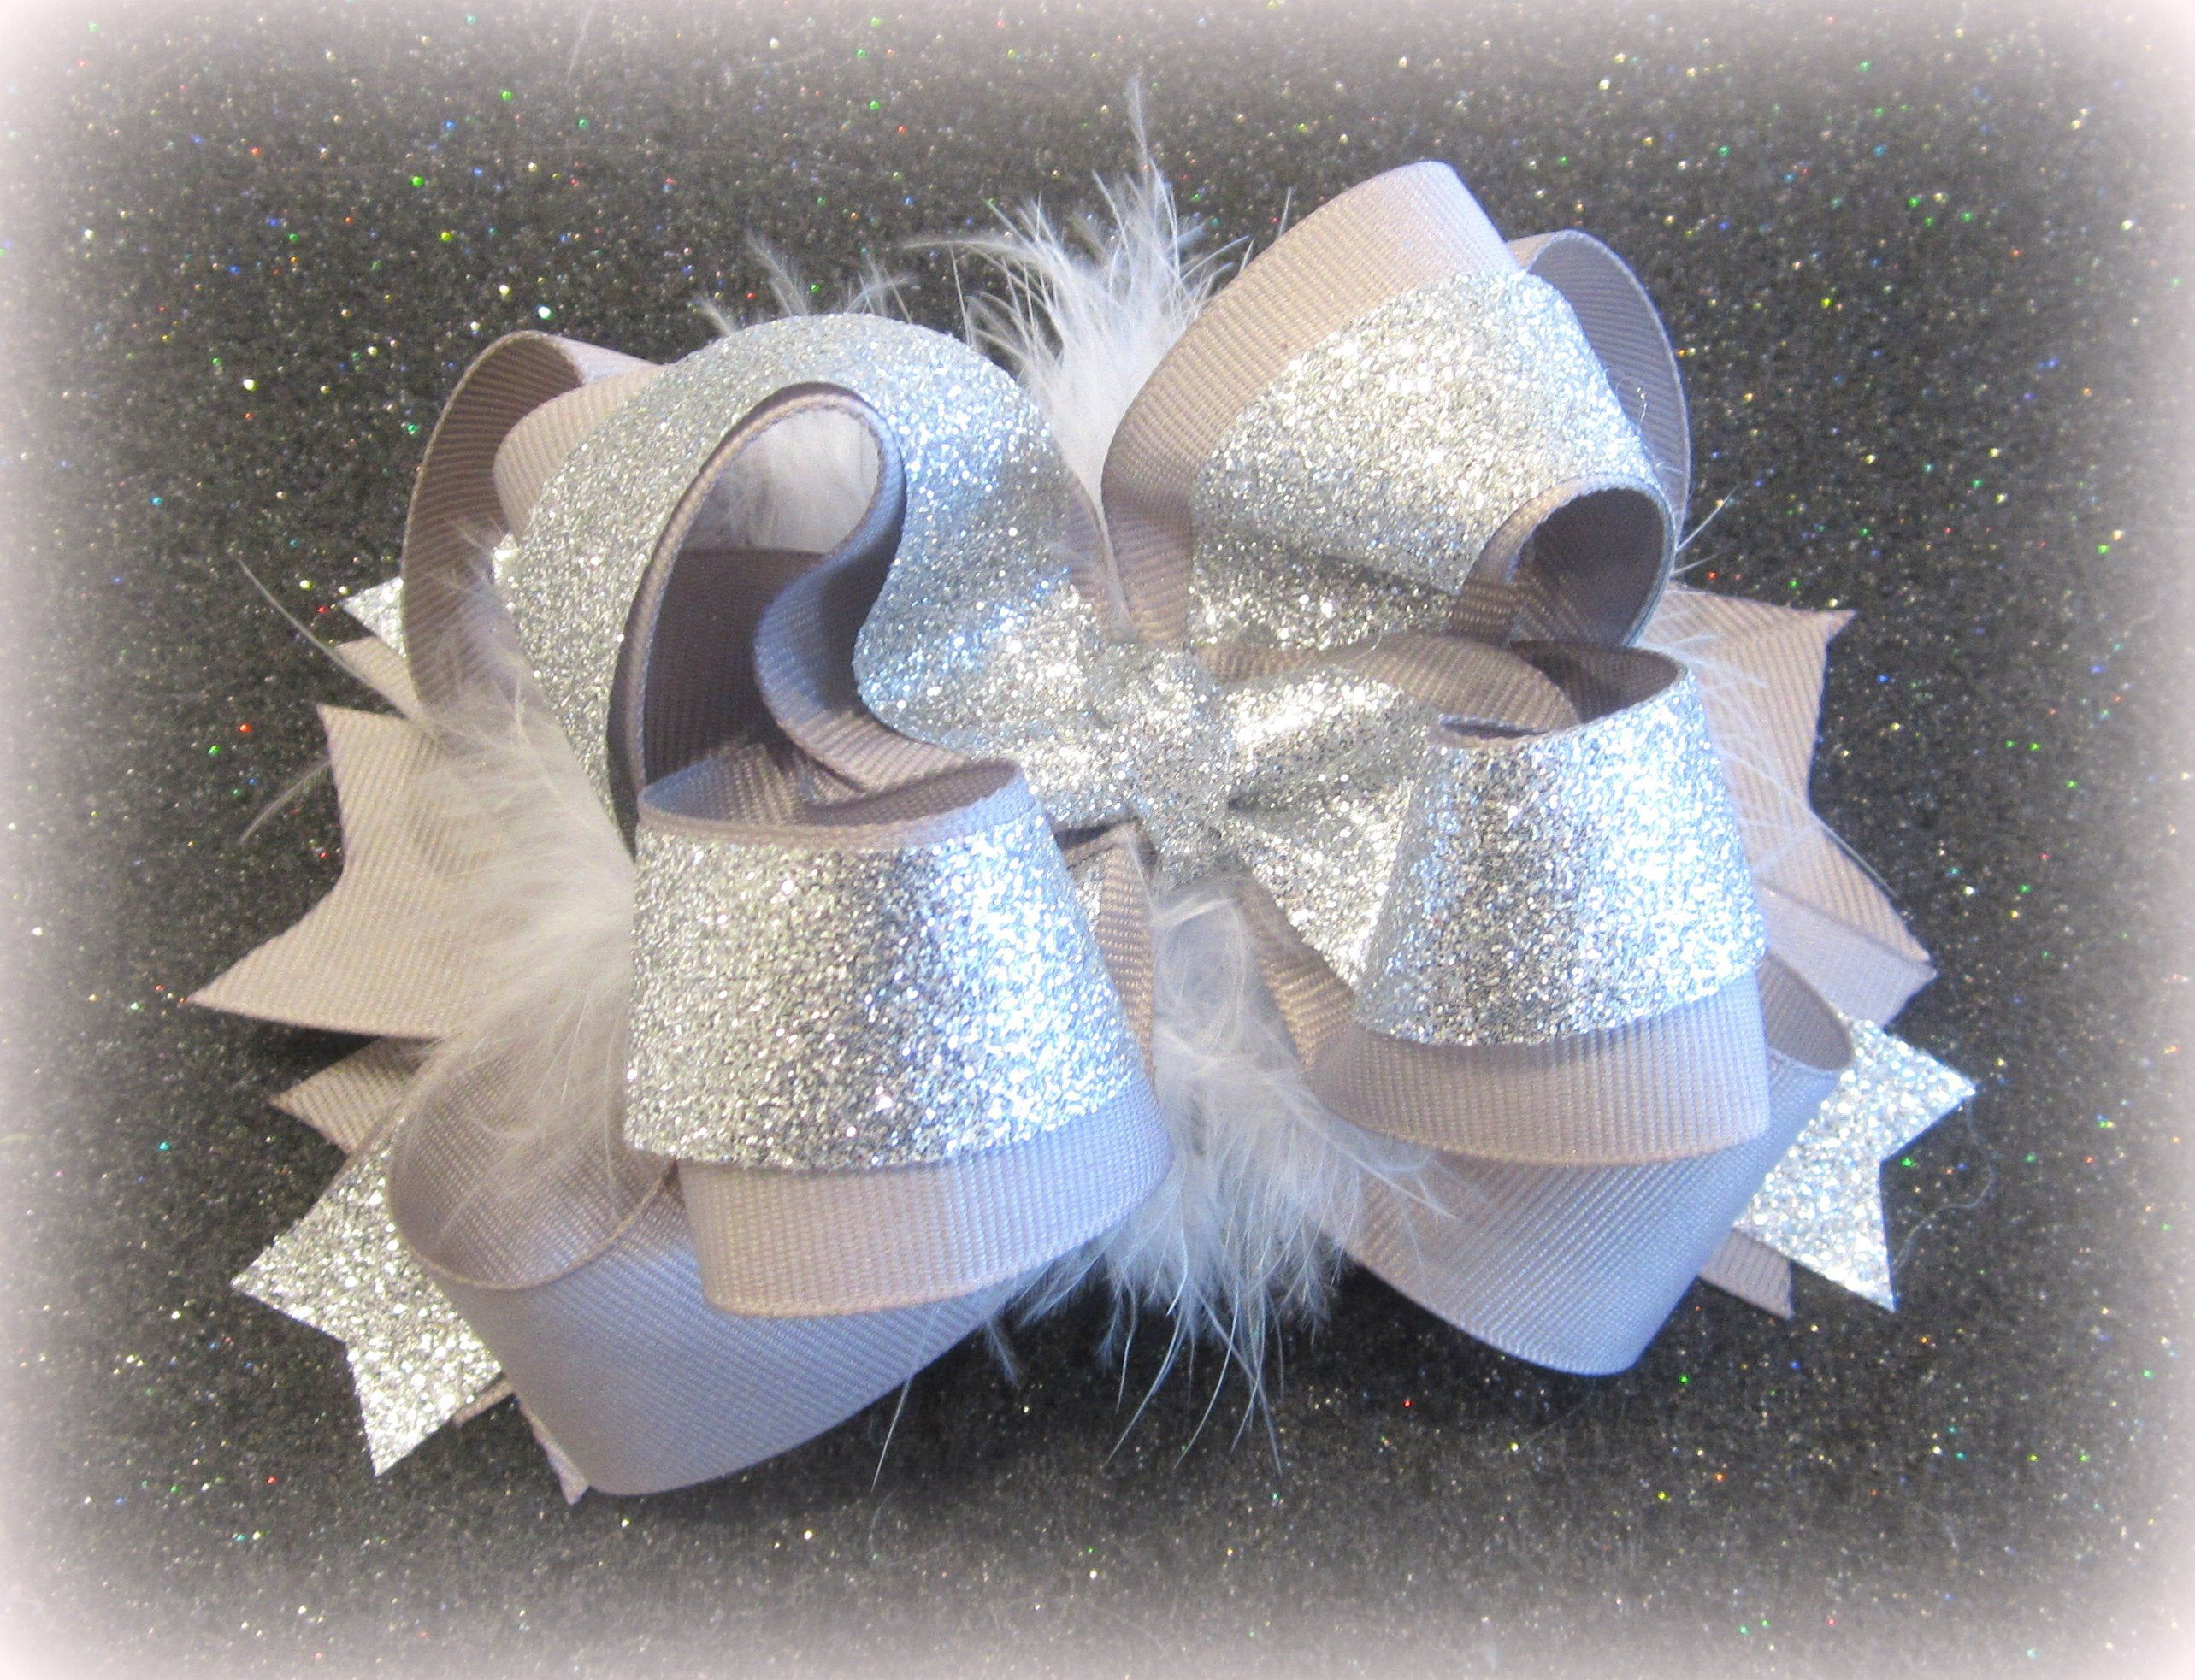 Girls Big hair Bows, Big Silver Bow, OTT Hair Bow, Silver Headband, Baby Bow, Silver Glitter Bow, Boutique Bows, Stacked Bows, Pageant Bows